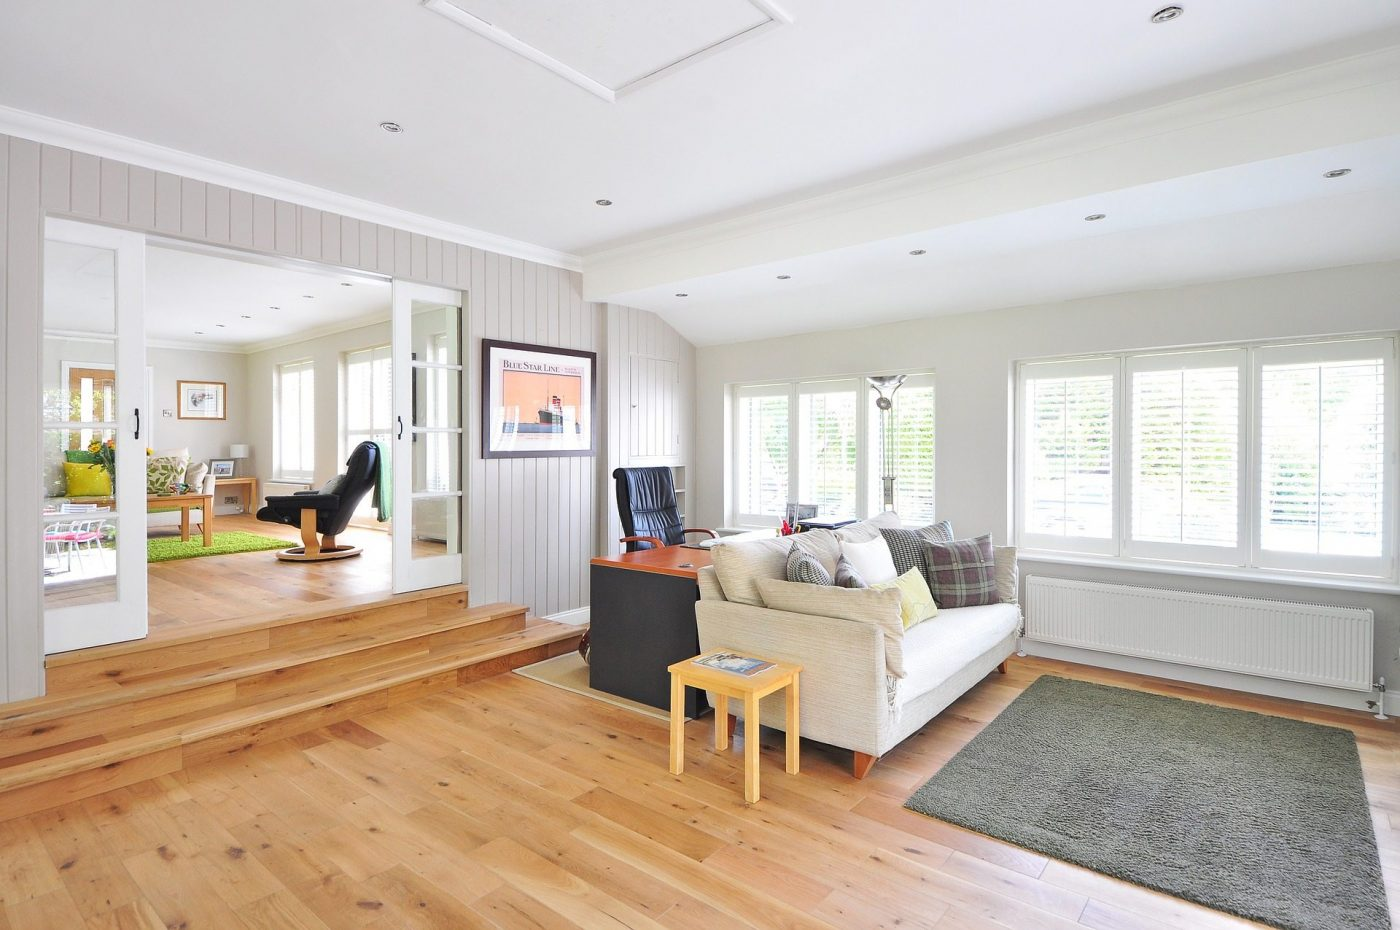 7 Reasons why the wood floor is perfect for your home